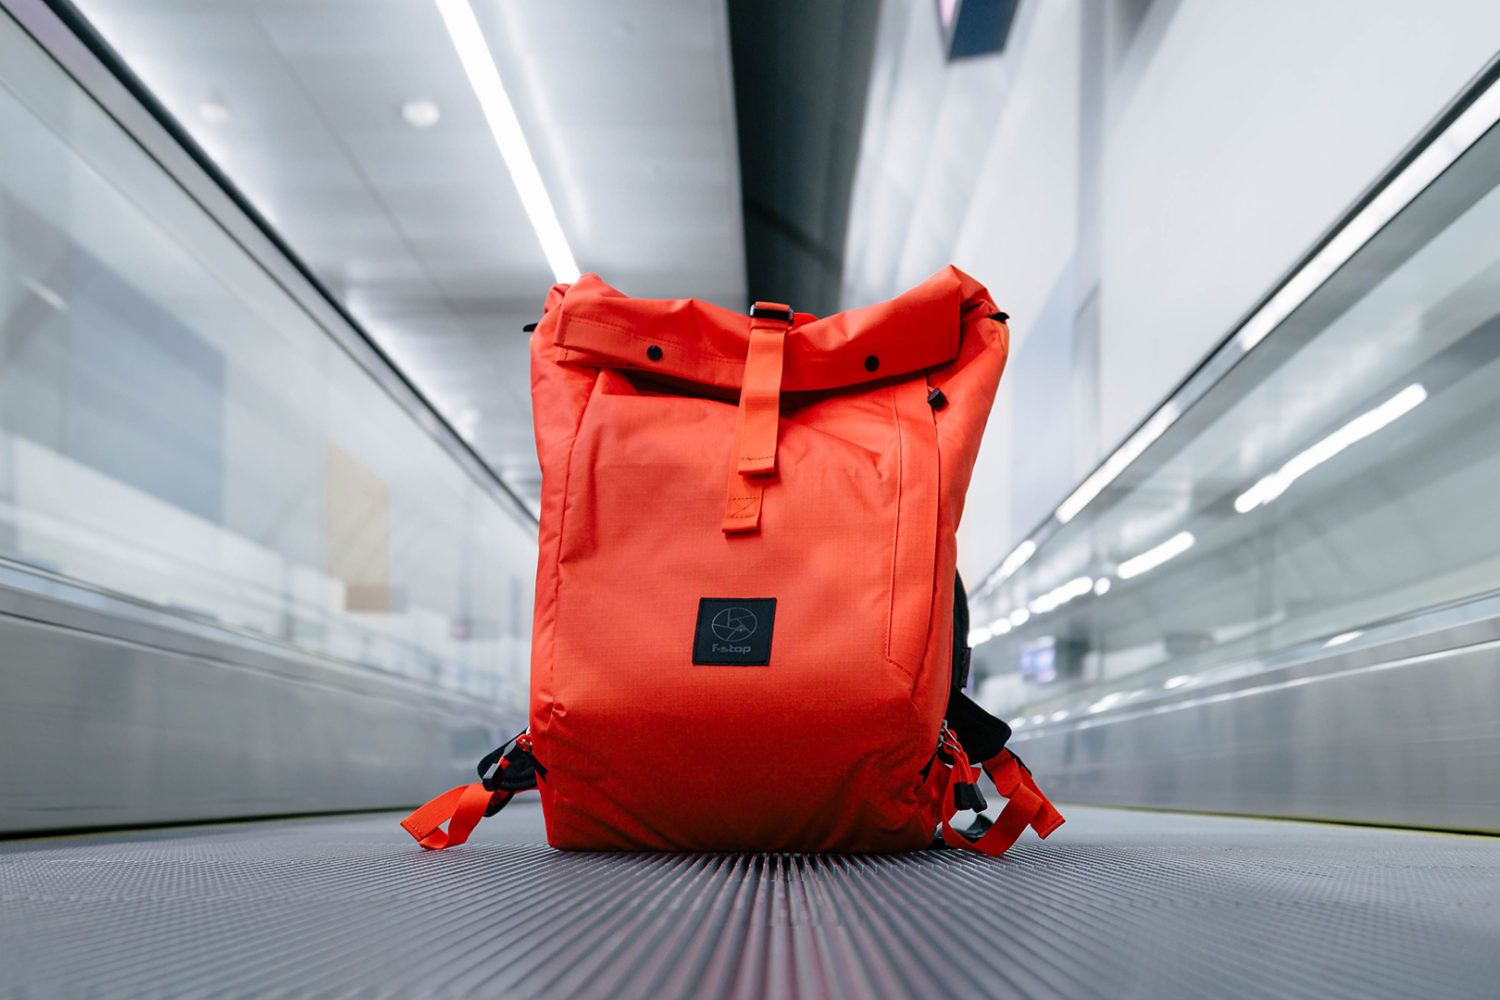 Meet Dalston: f-stop's versatile camera bag